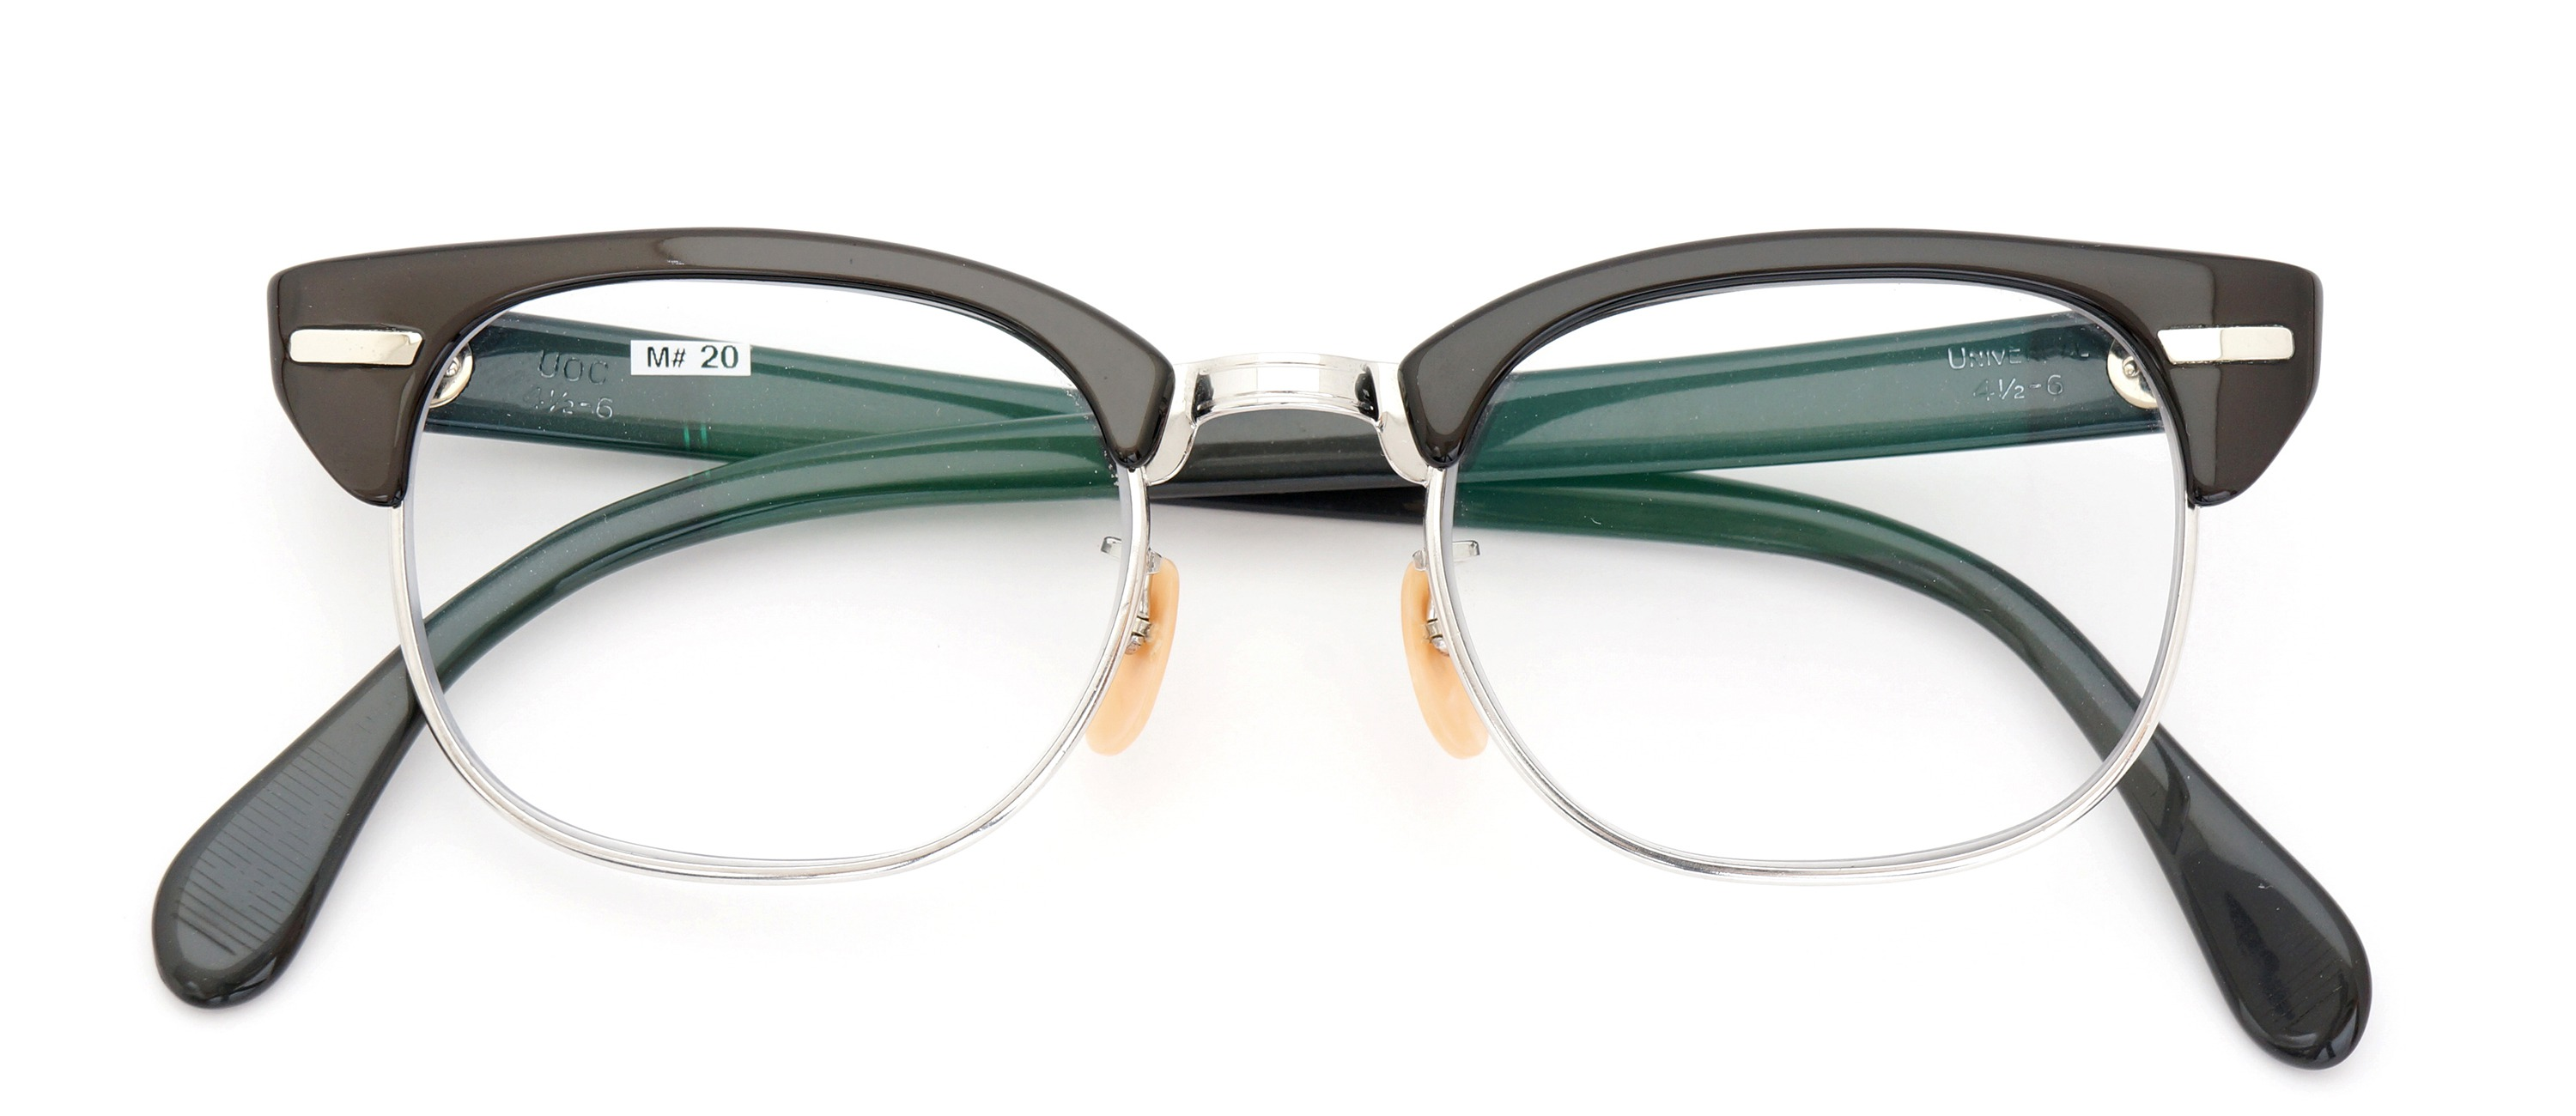 The Spectacle メガネ 1950s-60s Universal Combination UOC-600E Grey-Stripe WG 48-20 イメージ2